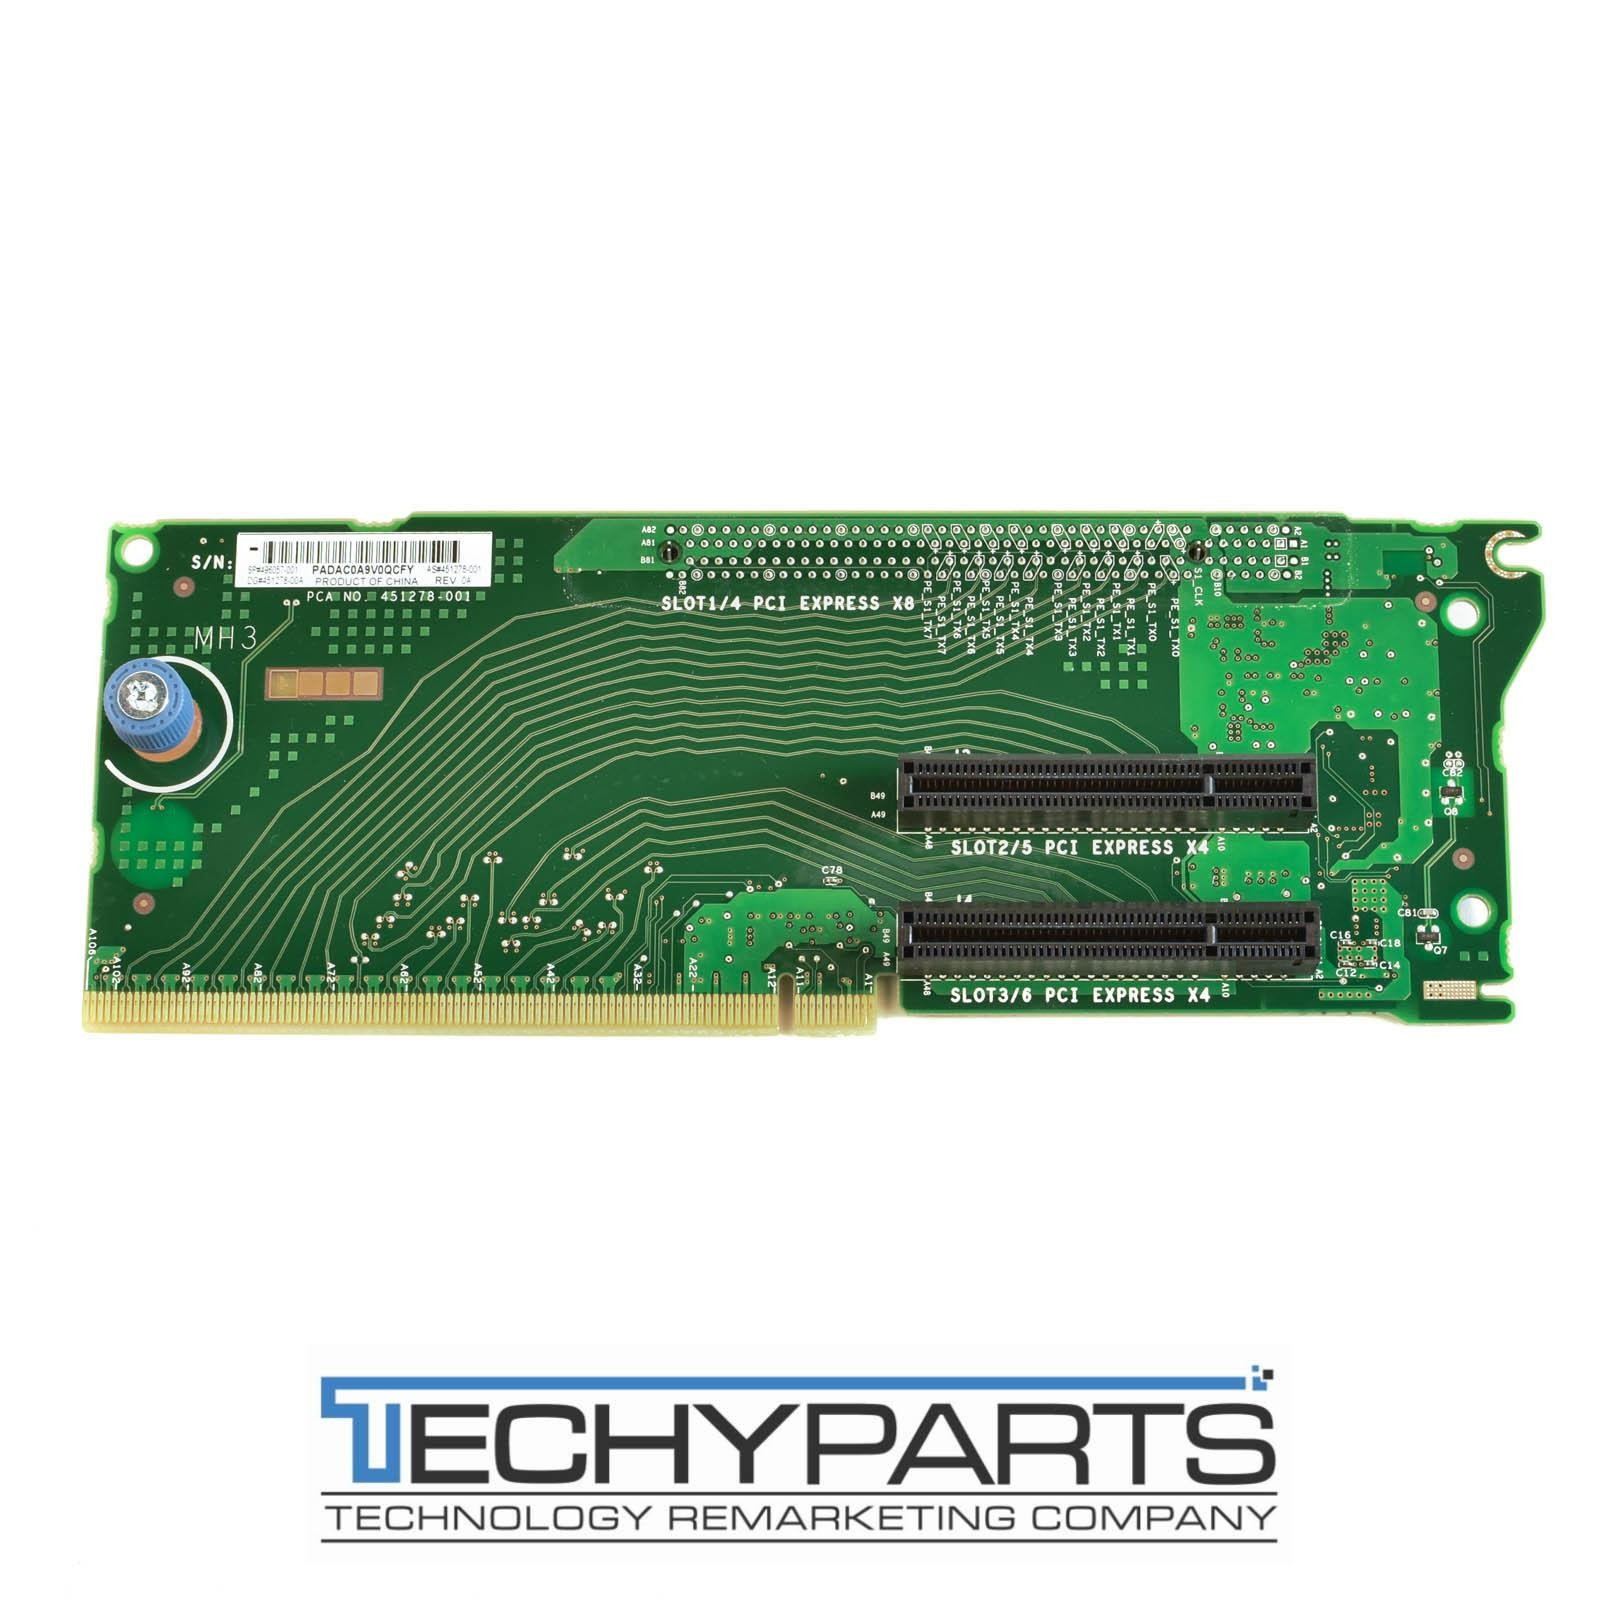 DRIVER UPDATE: DL380 PCI MEMORY CONTROLLER